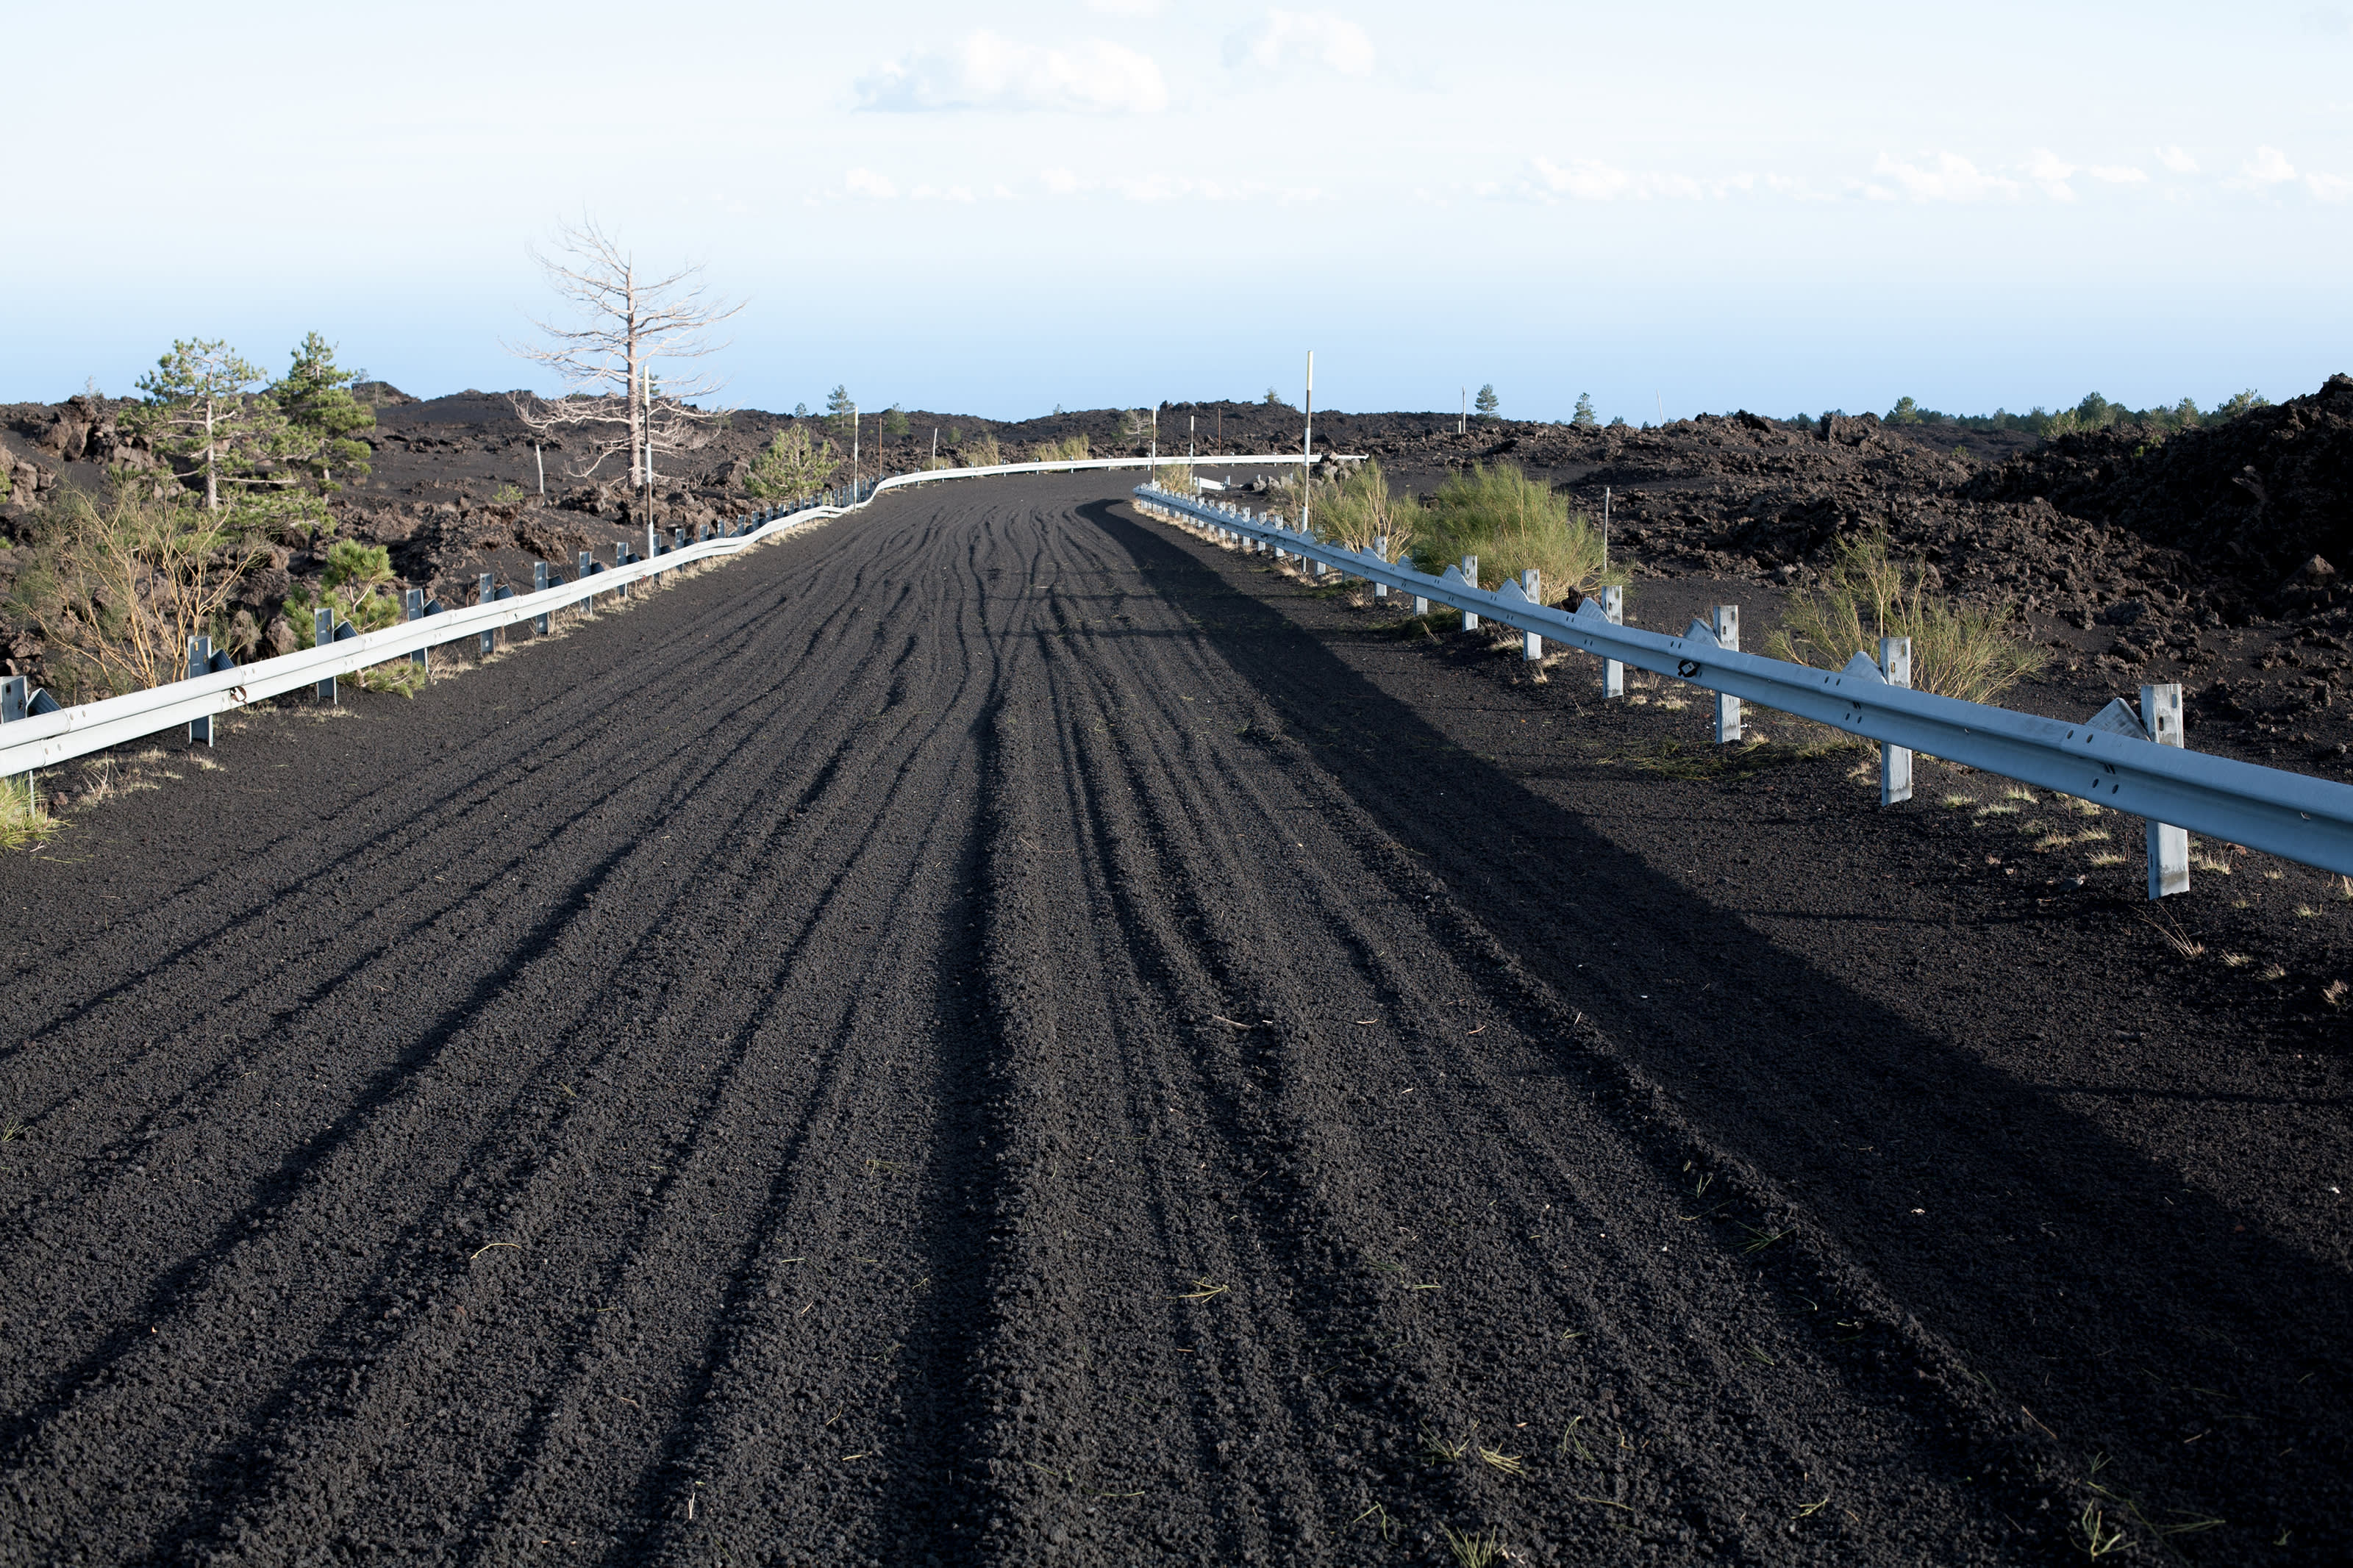 effects of Etna's eruptions on surrounding landscapes.